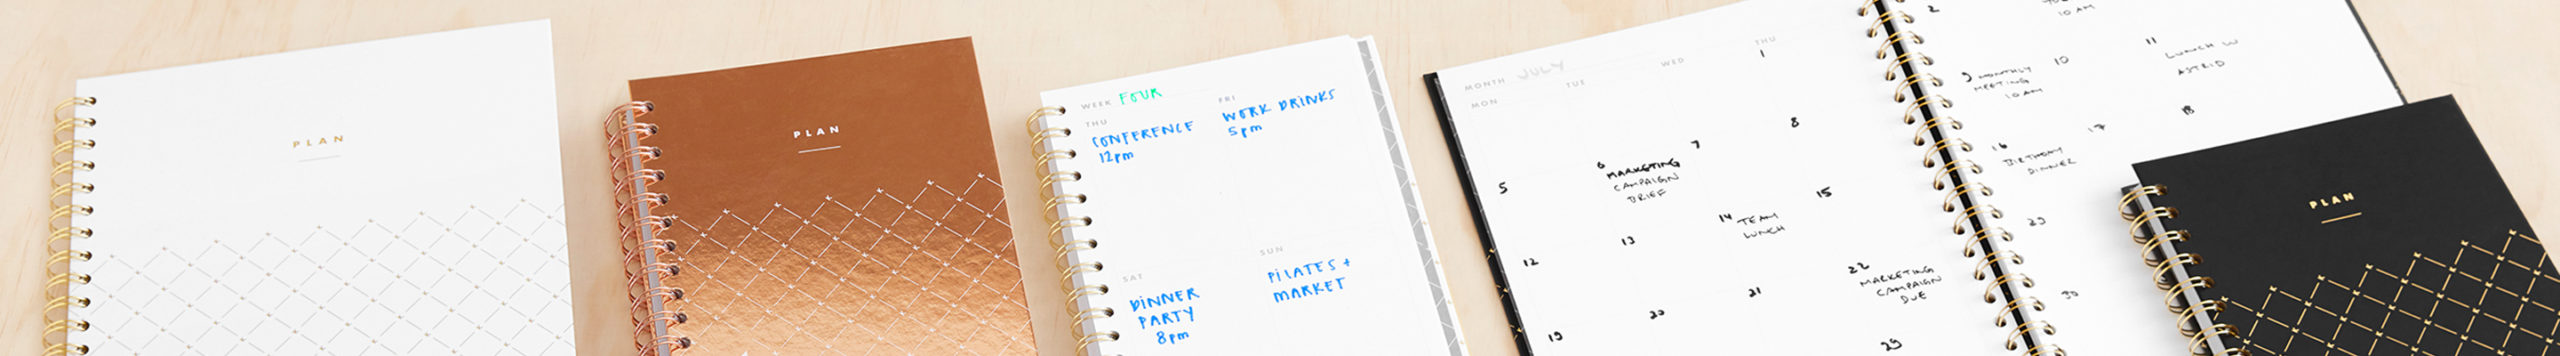 5 UNIQUE WAYS TO USE THE NEW EVERYTHING PLANNER